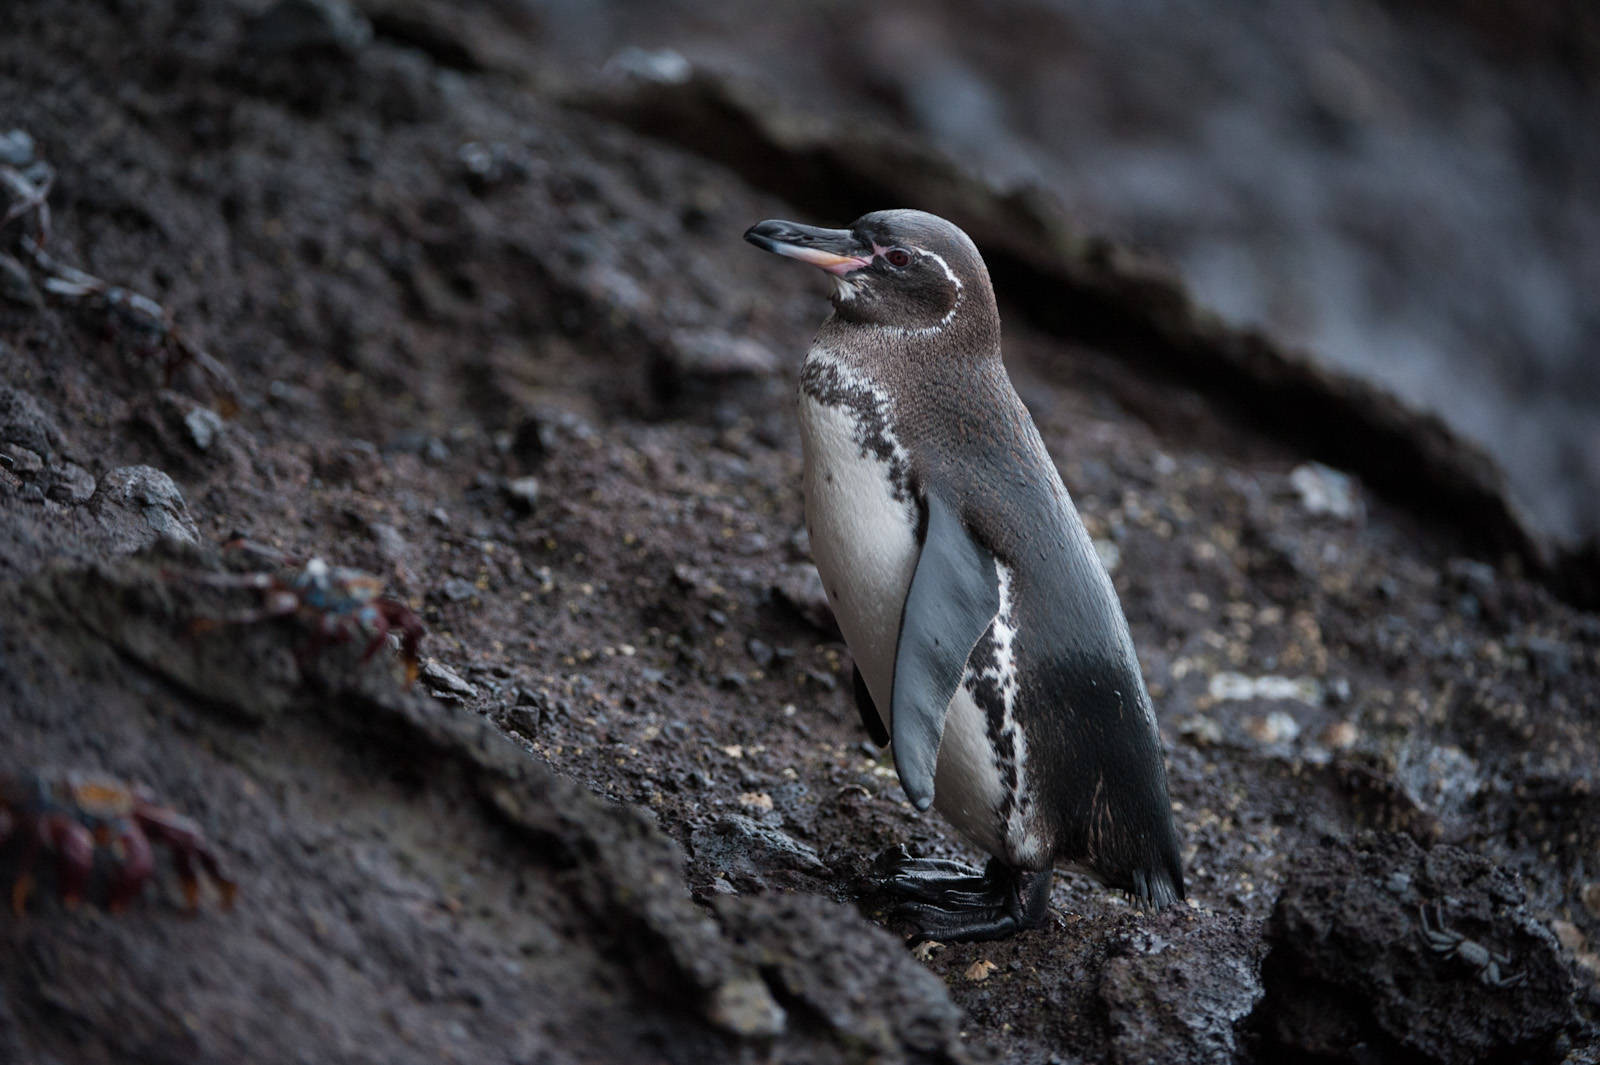 Photo: A Galapagos penguin (Spheniscus mendiculus) at Tagus Cove in Galapagos National Park.